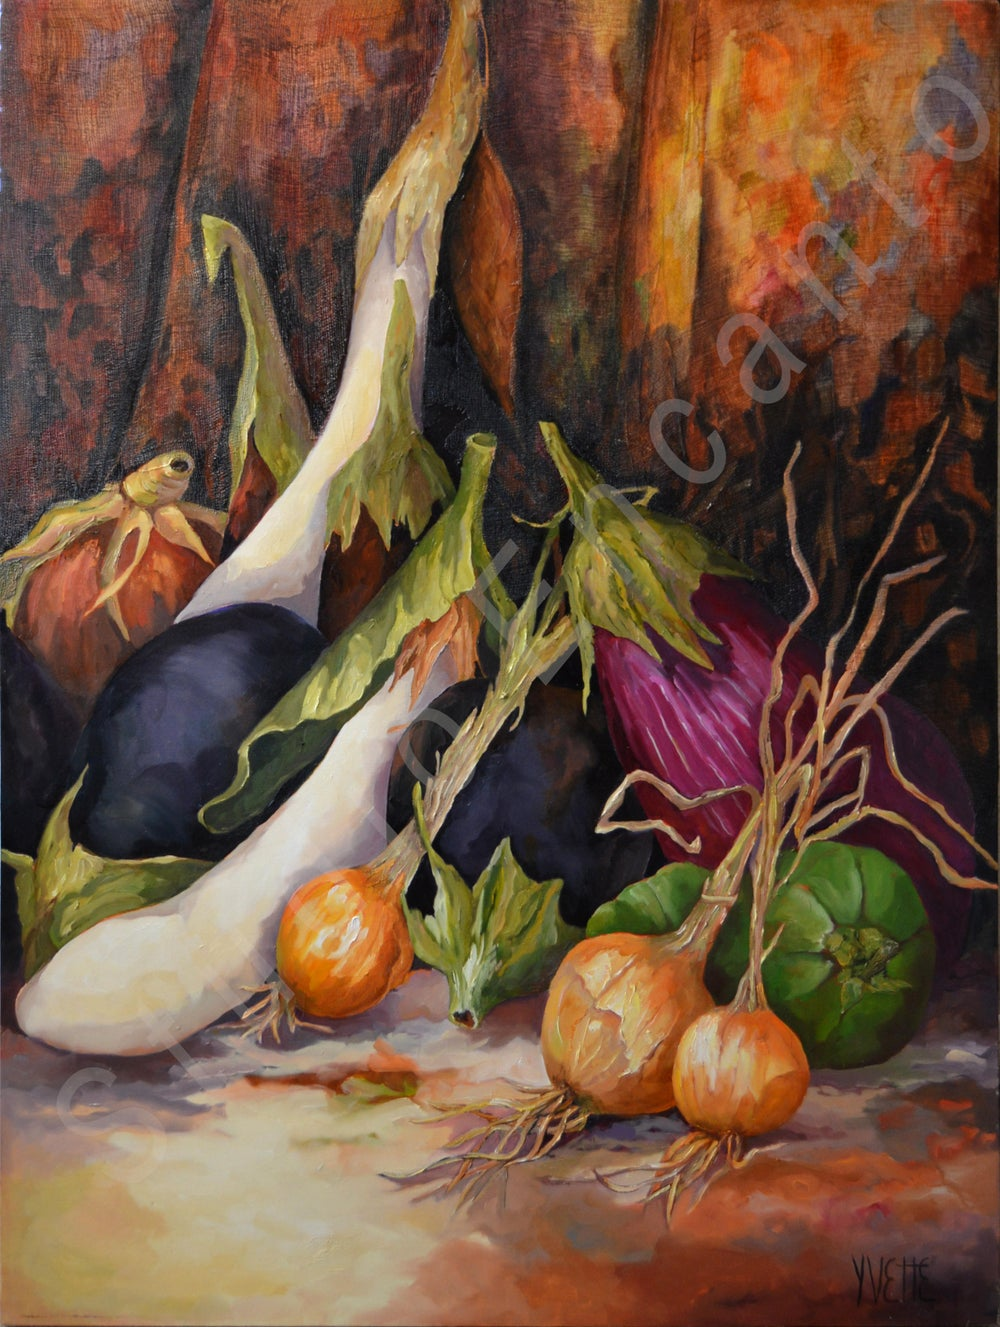 Image of Eggplants, Green Peppers Tapestry by Yvette Galliher